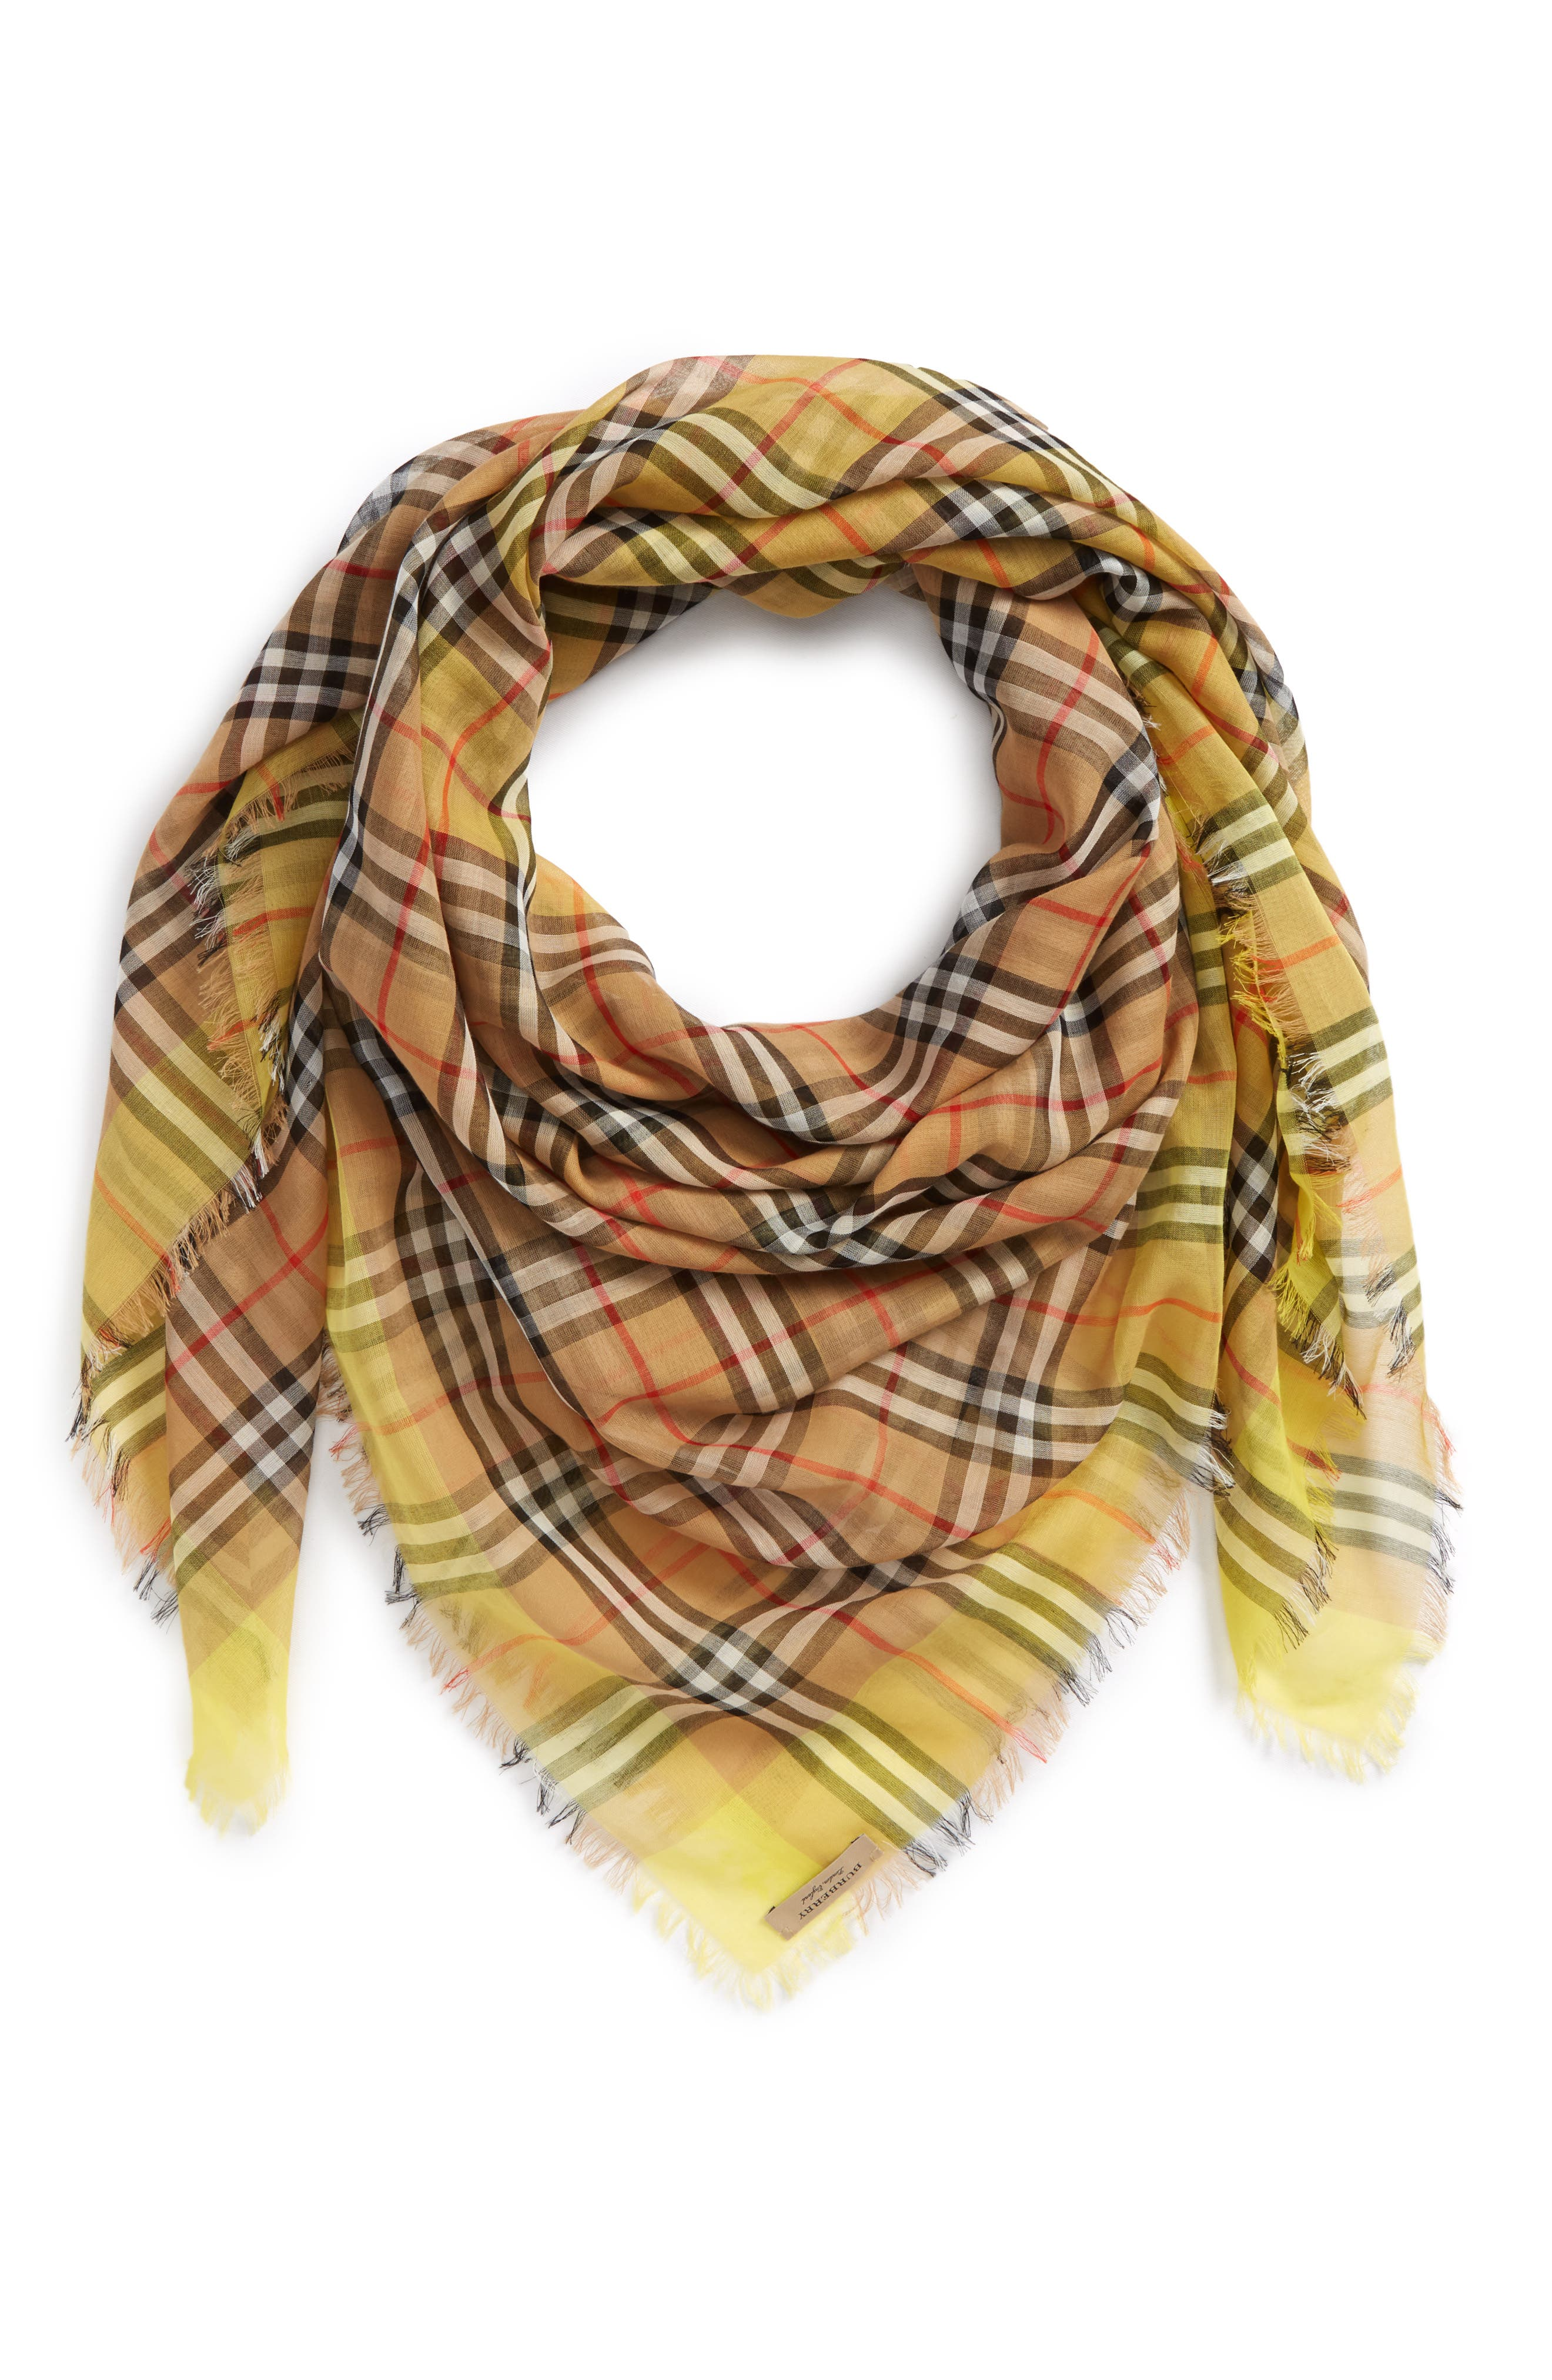 Burberry Colorblock Vintage Check Cotton Square Scarf